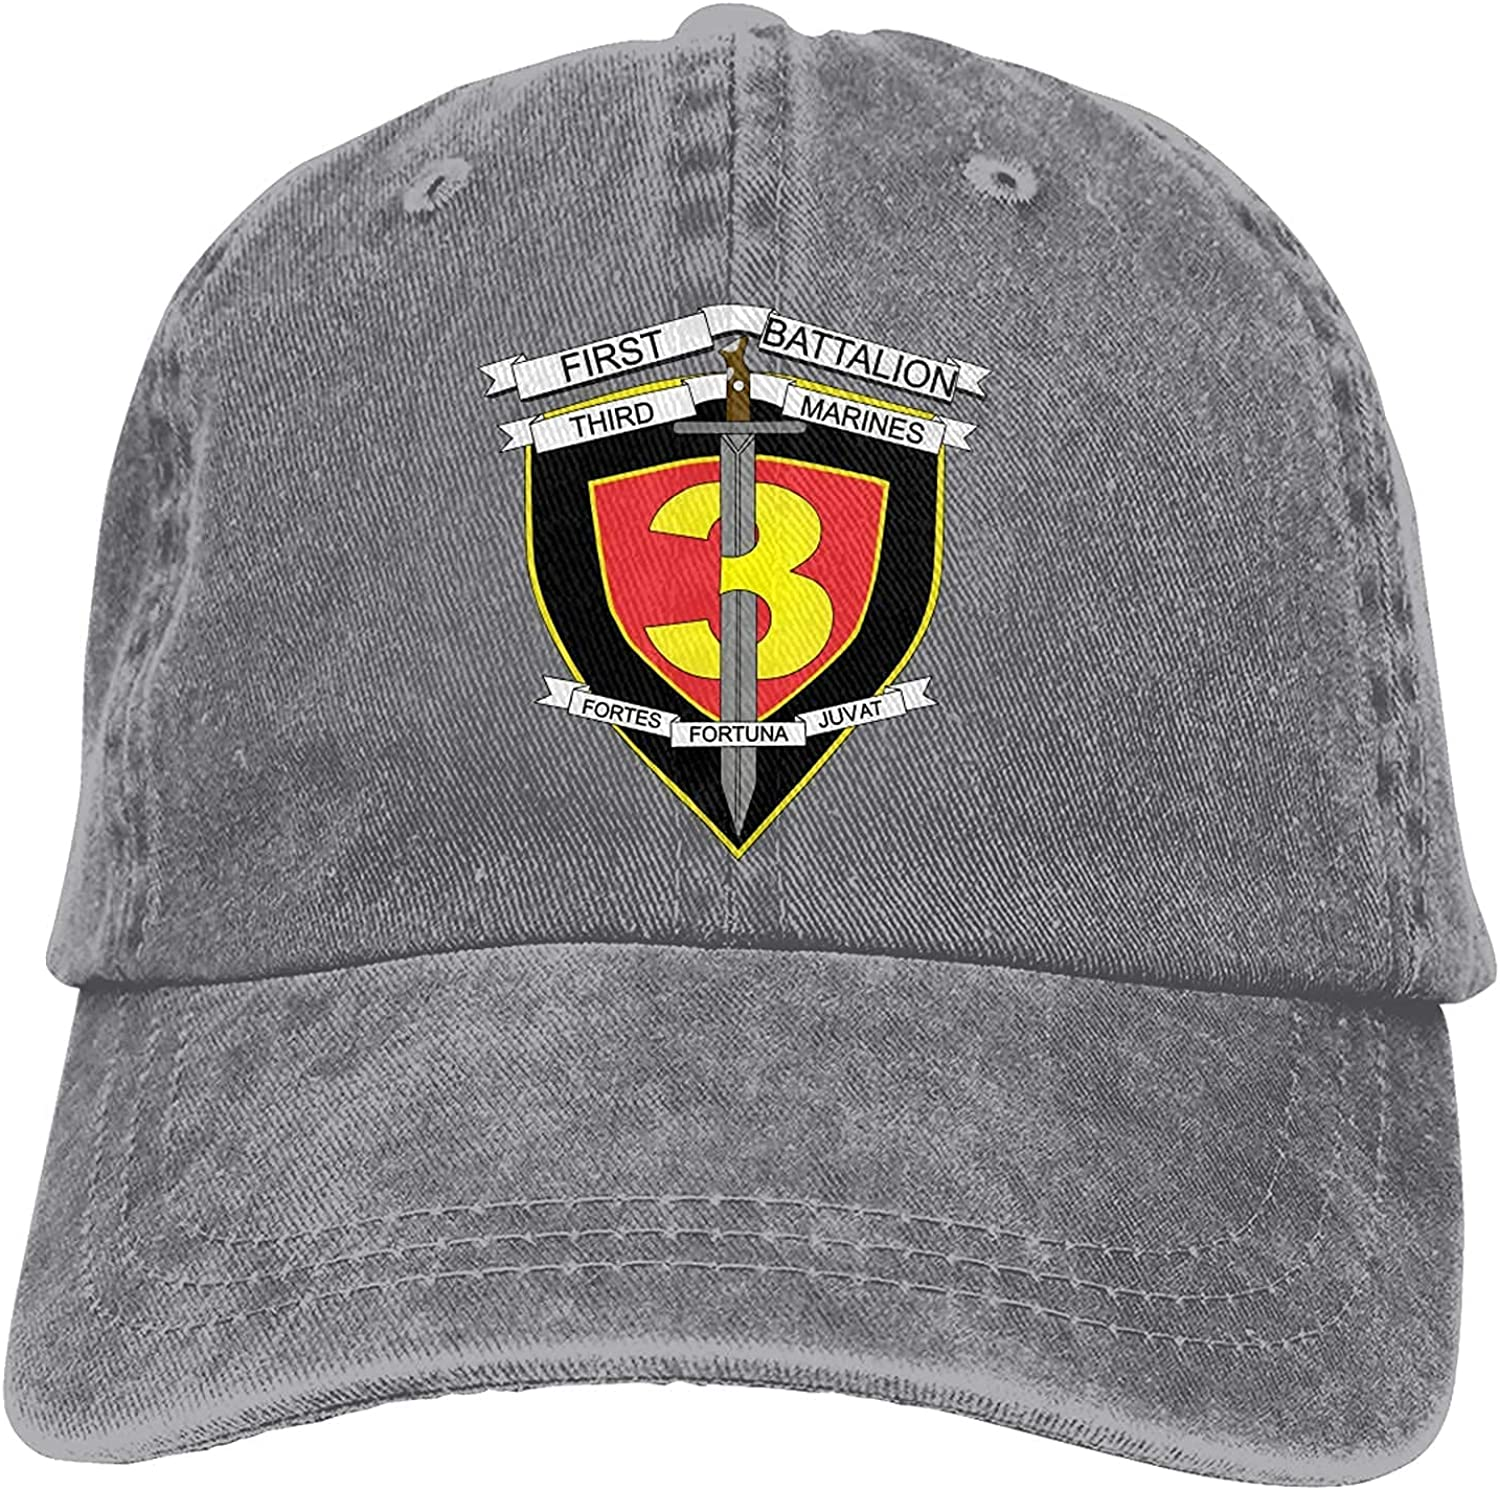 BGWORZD 3rd Battalion 7th Marines Decal Outdoor Men's Baseball Cap Sports and Leisure Adjustable Cowboy Hat Performance Cap Navy